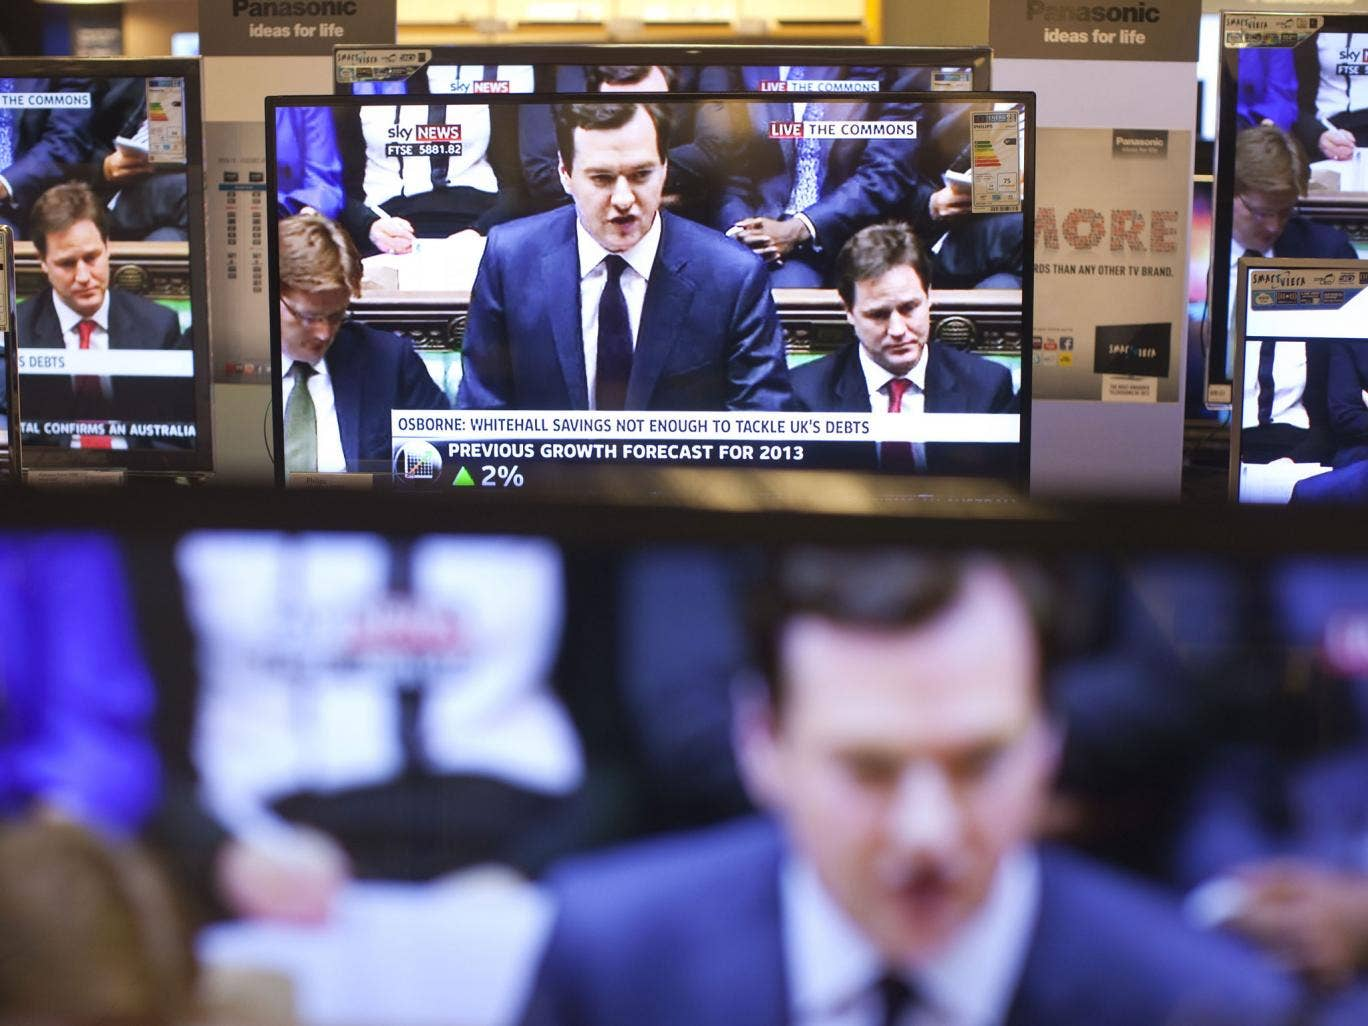 Double vision: Television screens relaying the Chancellor's Autumn Statement